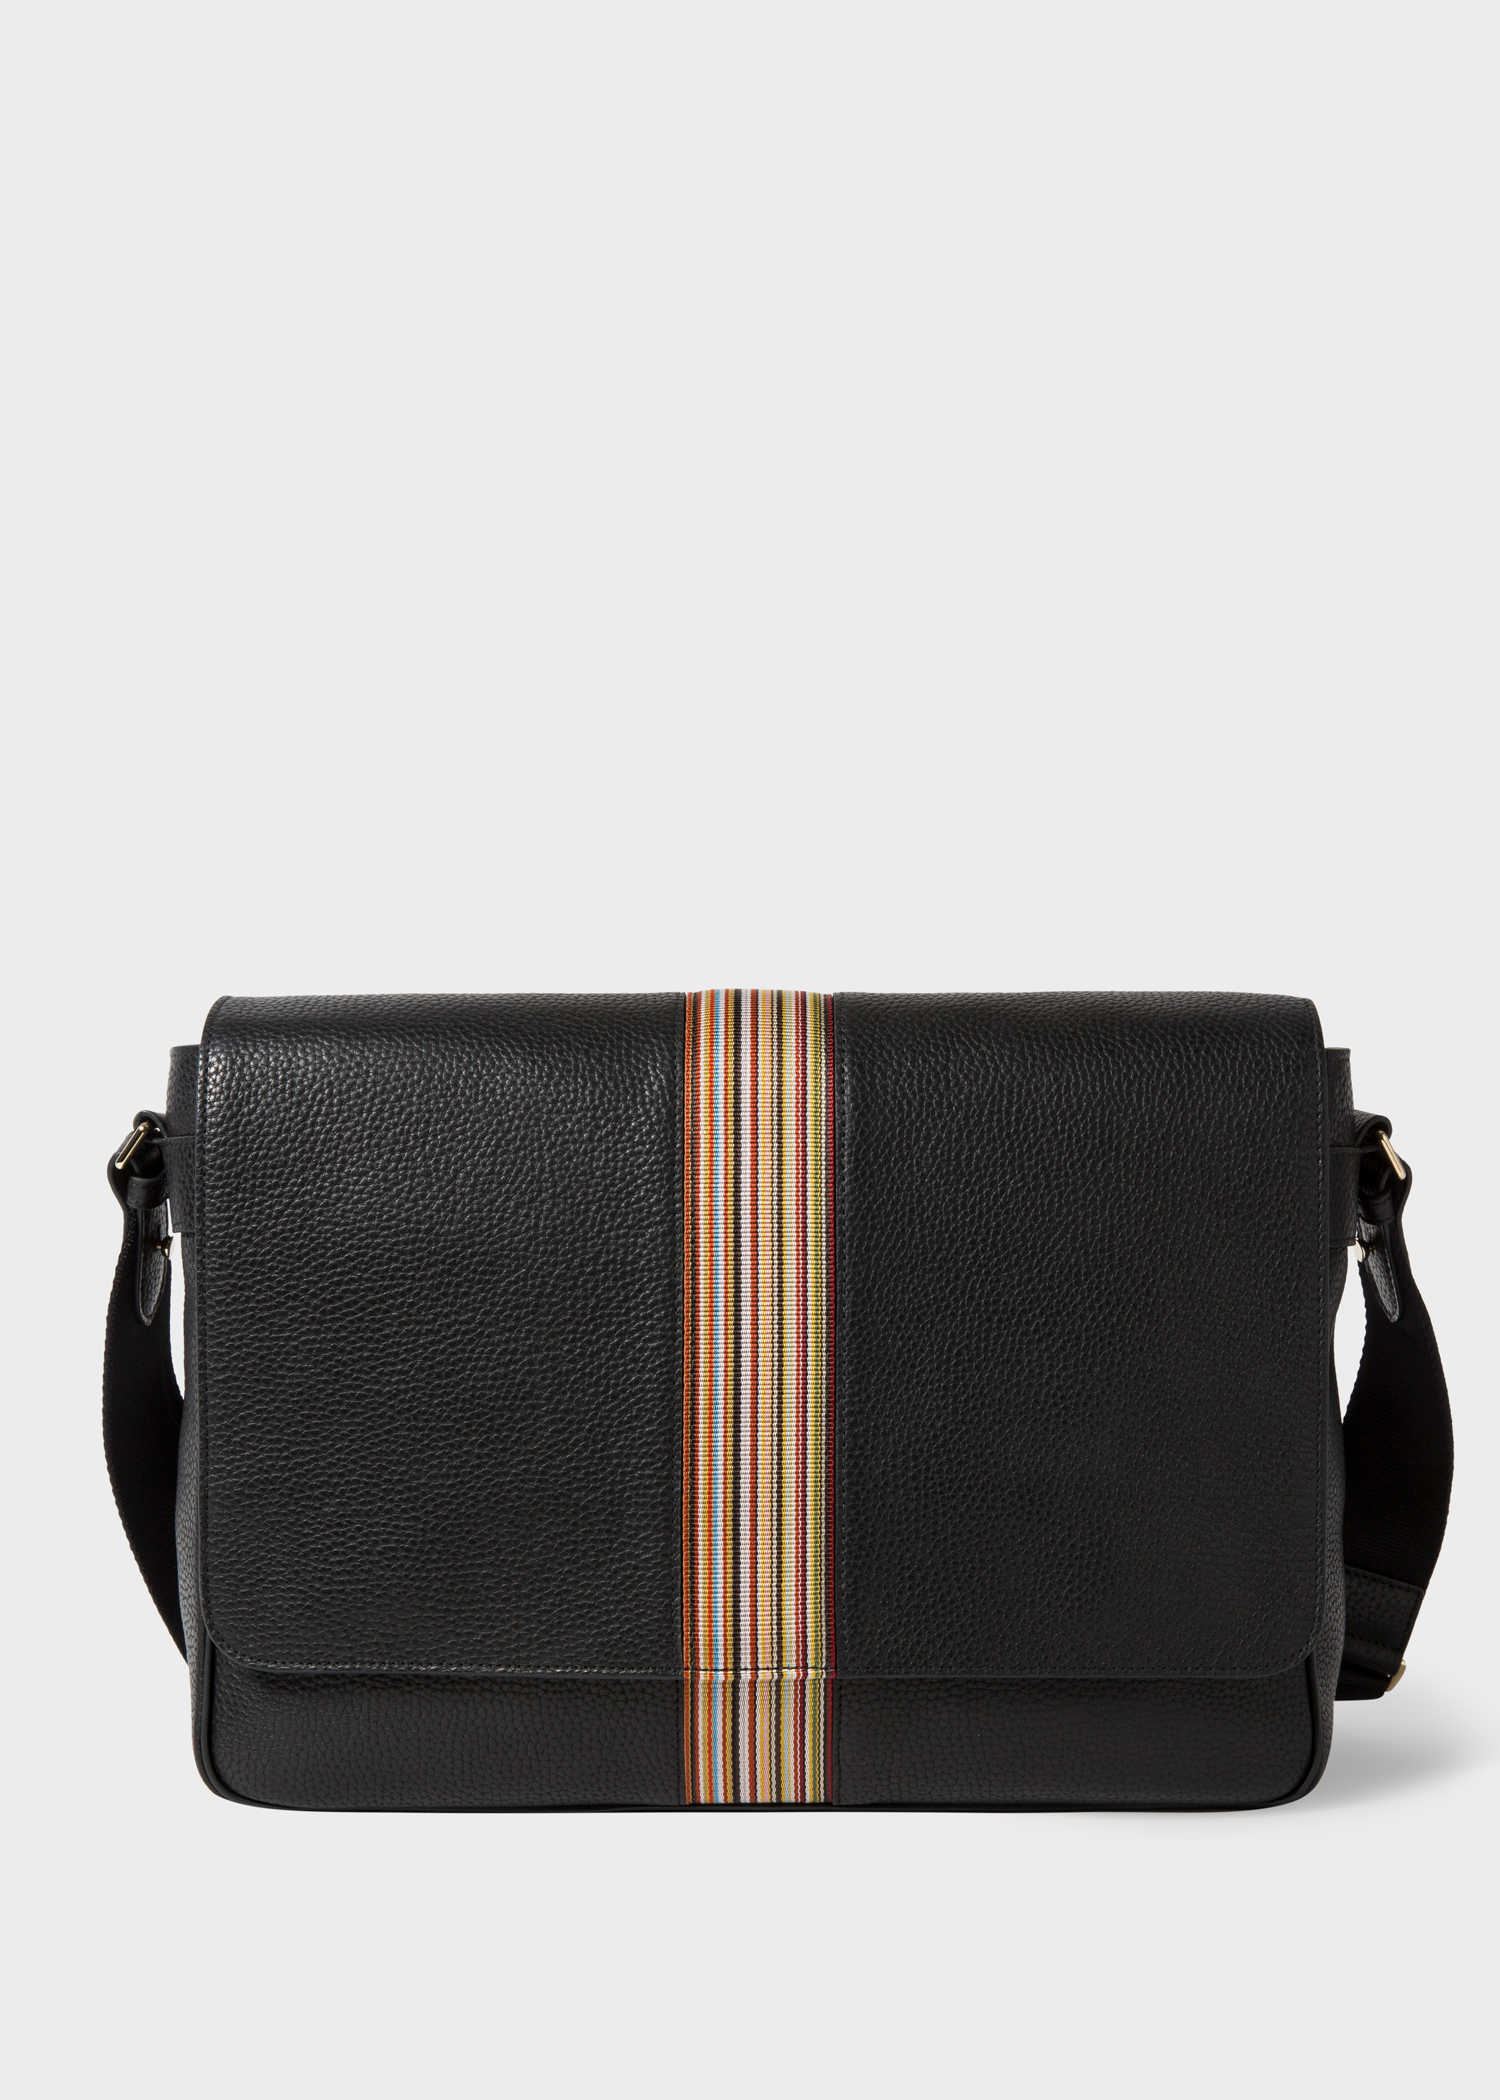 15e1853221 Sac Messenger Homme Noir 'Signature Stripe' En Cuir - Paul Smith ...